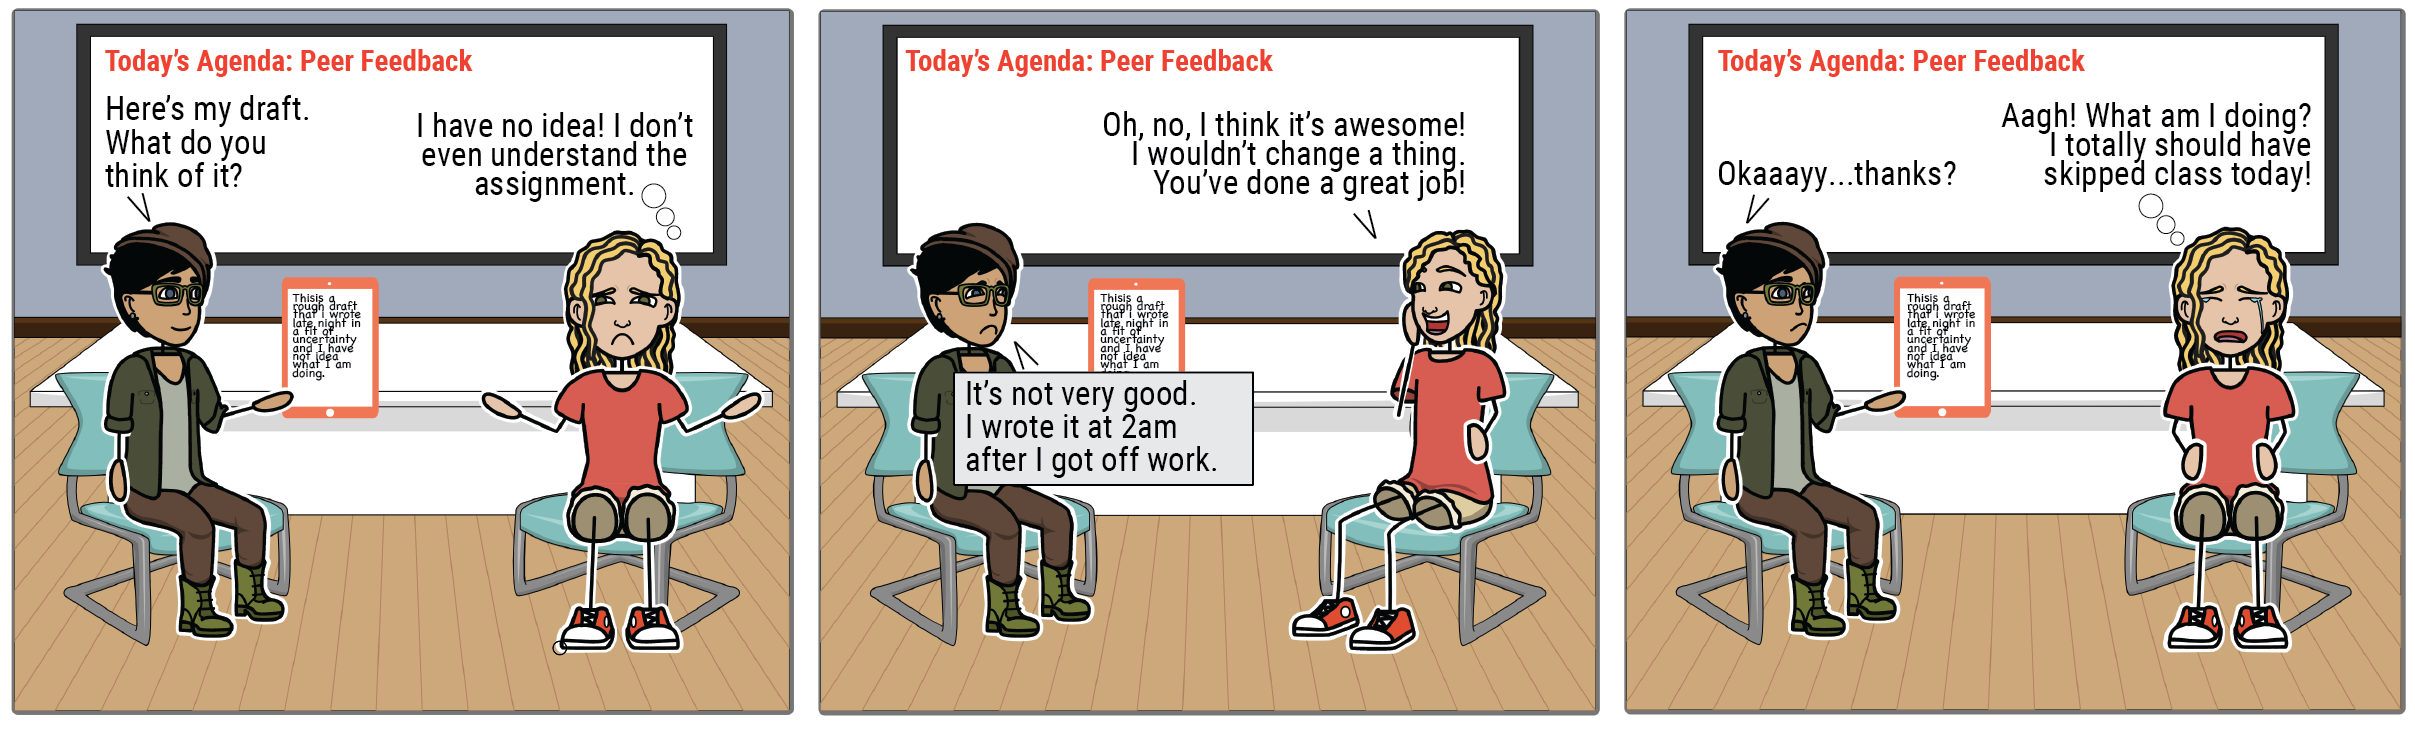 """A comic strip shows two students engaging in peer feedback. The first student asks, """"What do you think of my draft?"""" The second student responds, """"I have no idea. I don't even understand the assignment."""" Student 1 says, """"It's not very good. I wrote it at 2am after I got off work."""" Student 2: """"Oh, no, I think it's awesome. I wouldn't change a thing. You've done a great job!"""" Student 1: """"Okaaaaay, thanks?"""" Student 2: """"Aagh! What am I doing? I totally should have skipped class today."""""""